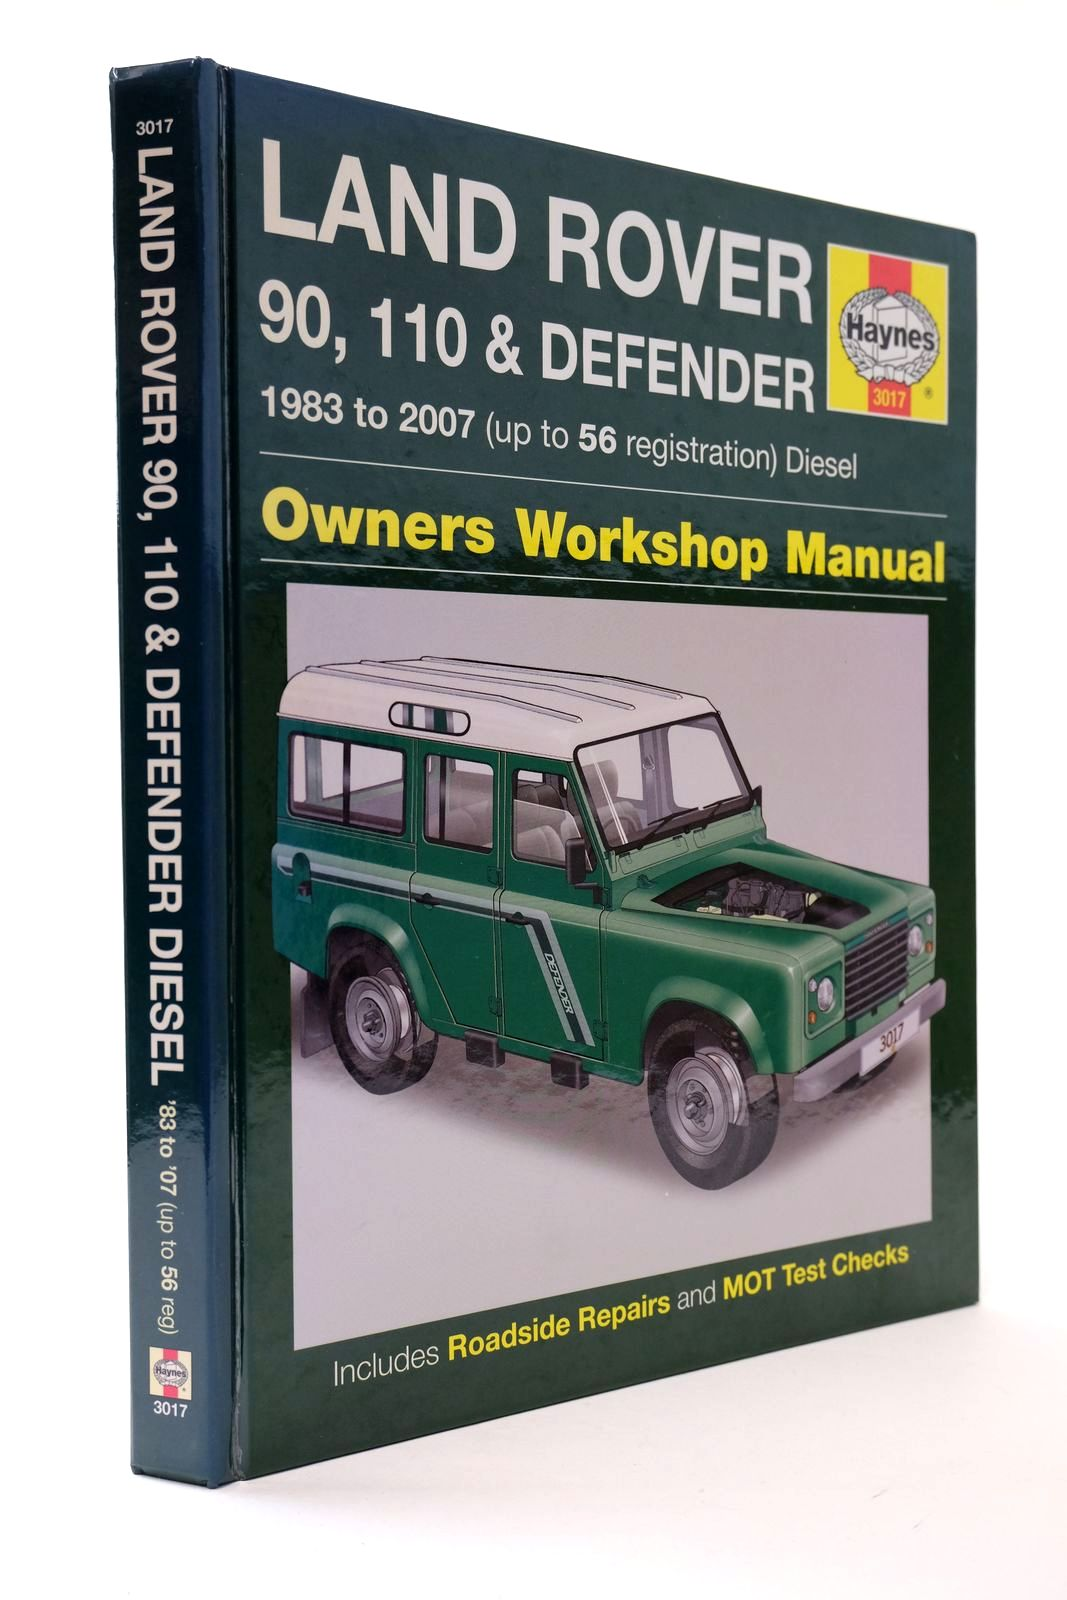 Photo of LAND ROVER 90, 110 & DEFENDER DIESEL OWNERS WORKSHOP MANUAL written by Coombs, Mark Rendle, Steve published by Haynes Publishing (STOCK CODE: 2132258)  for sale by Stella & Rose's Books